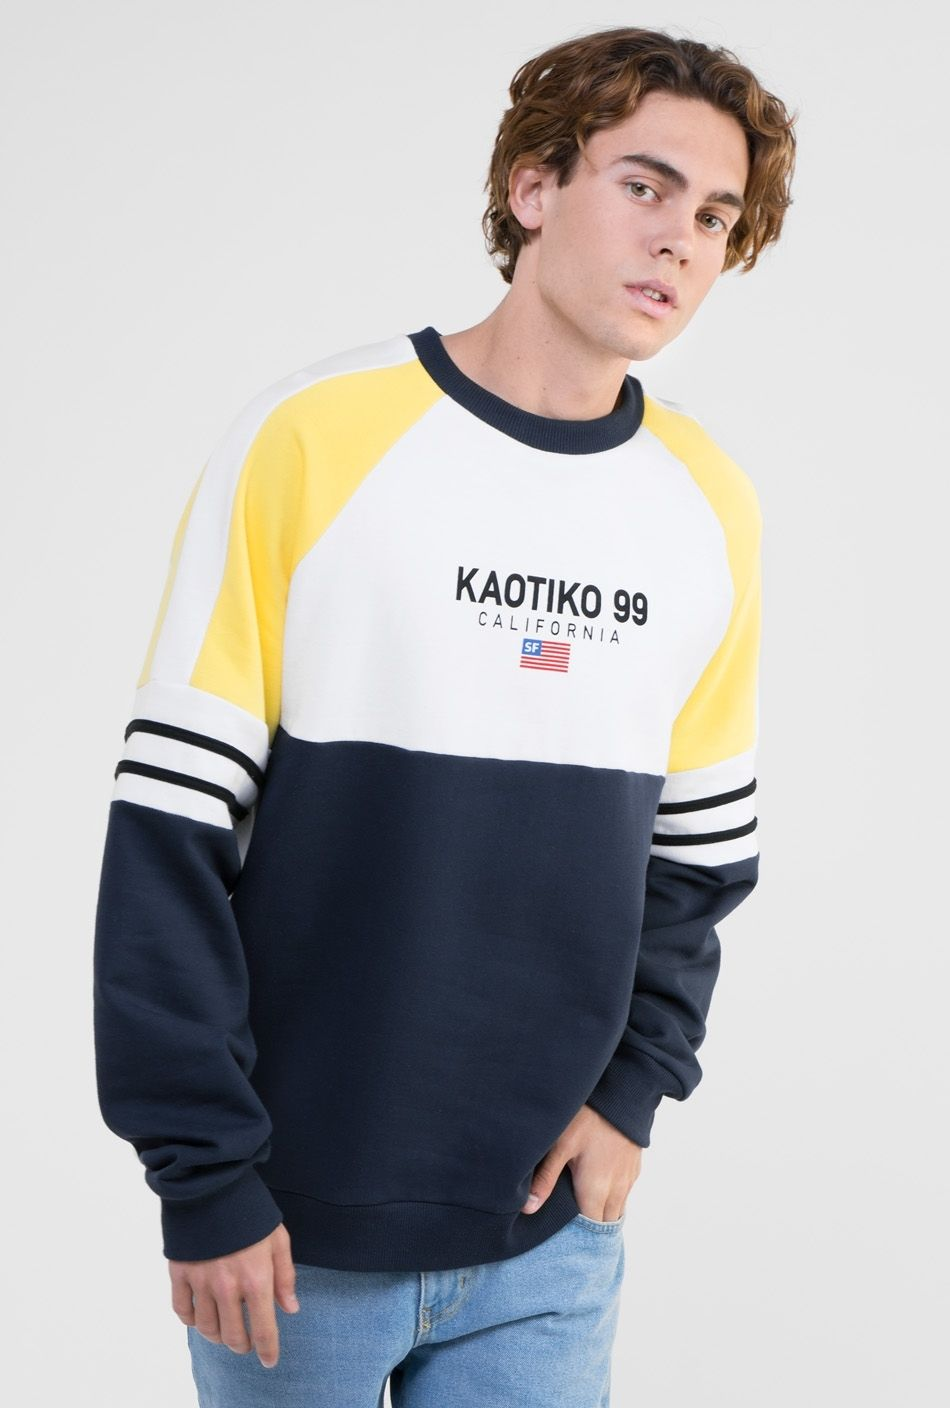 In Barcelona Made boy kaotikobcn sweatshirt Z6vgdqwd